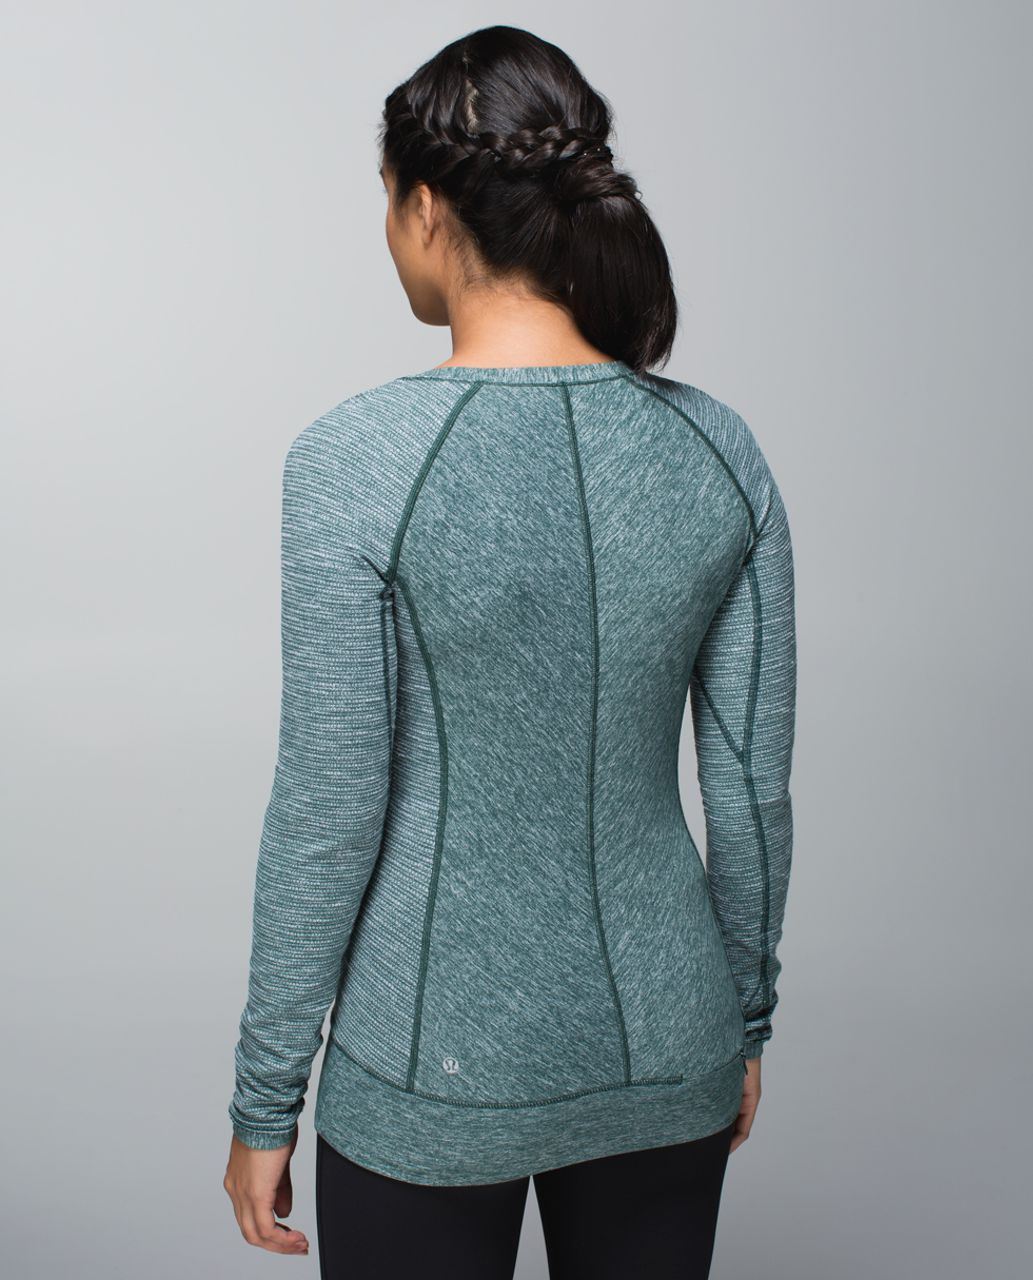 Lululemon Race Your Pace Long Sleeve - Heathered Fuel Green / Coco Pique Fuel Green